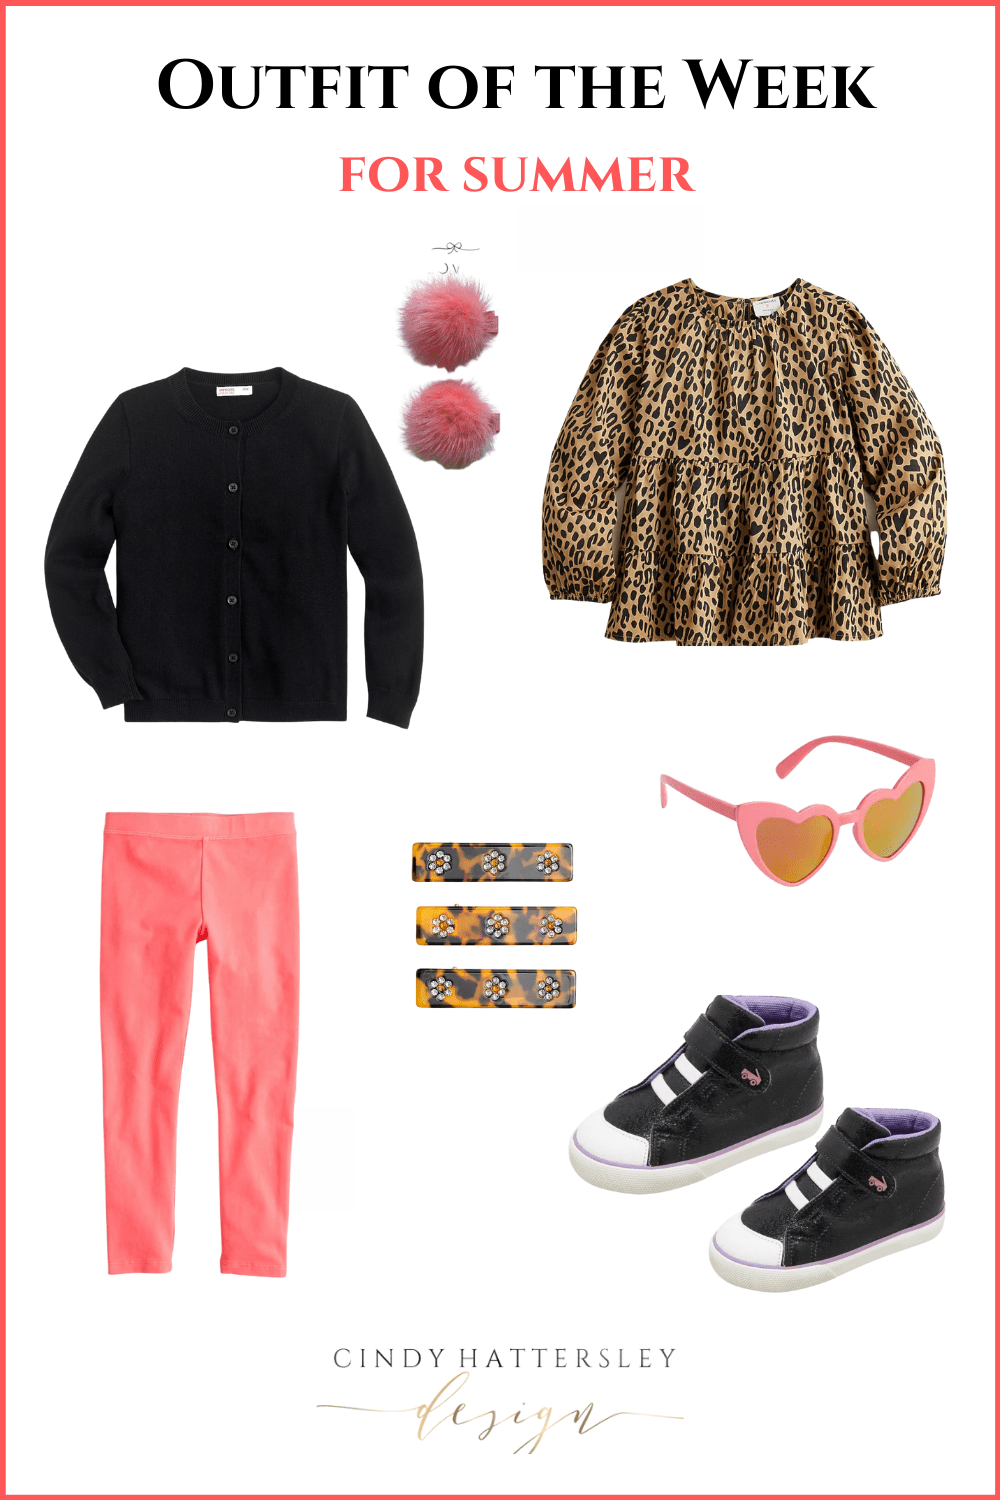 OUtfit of the week - Summer